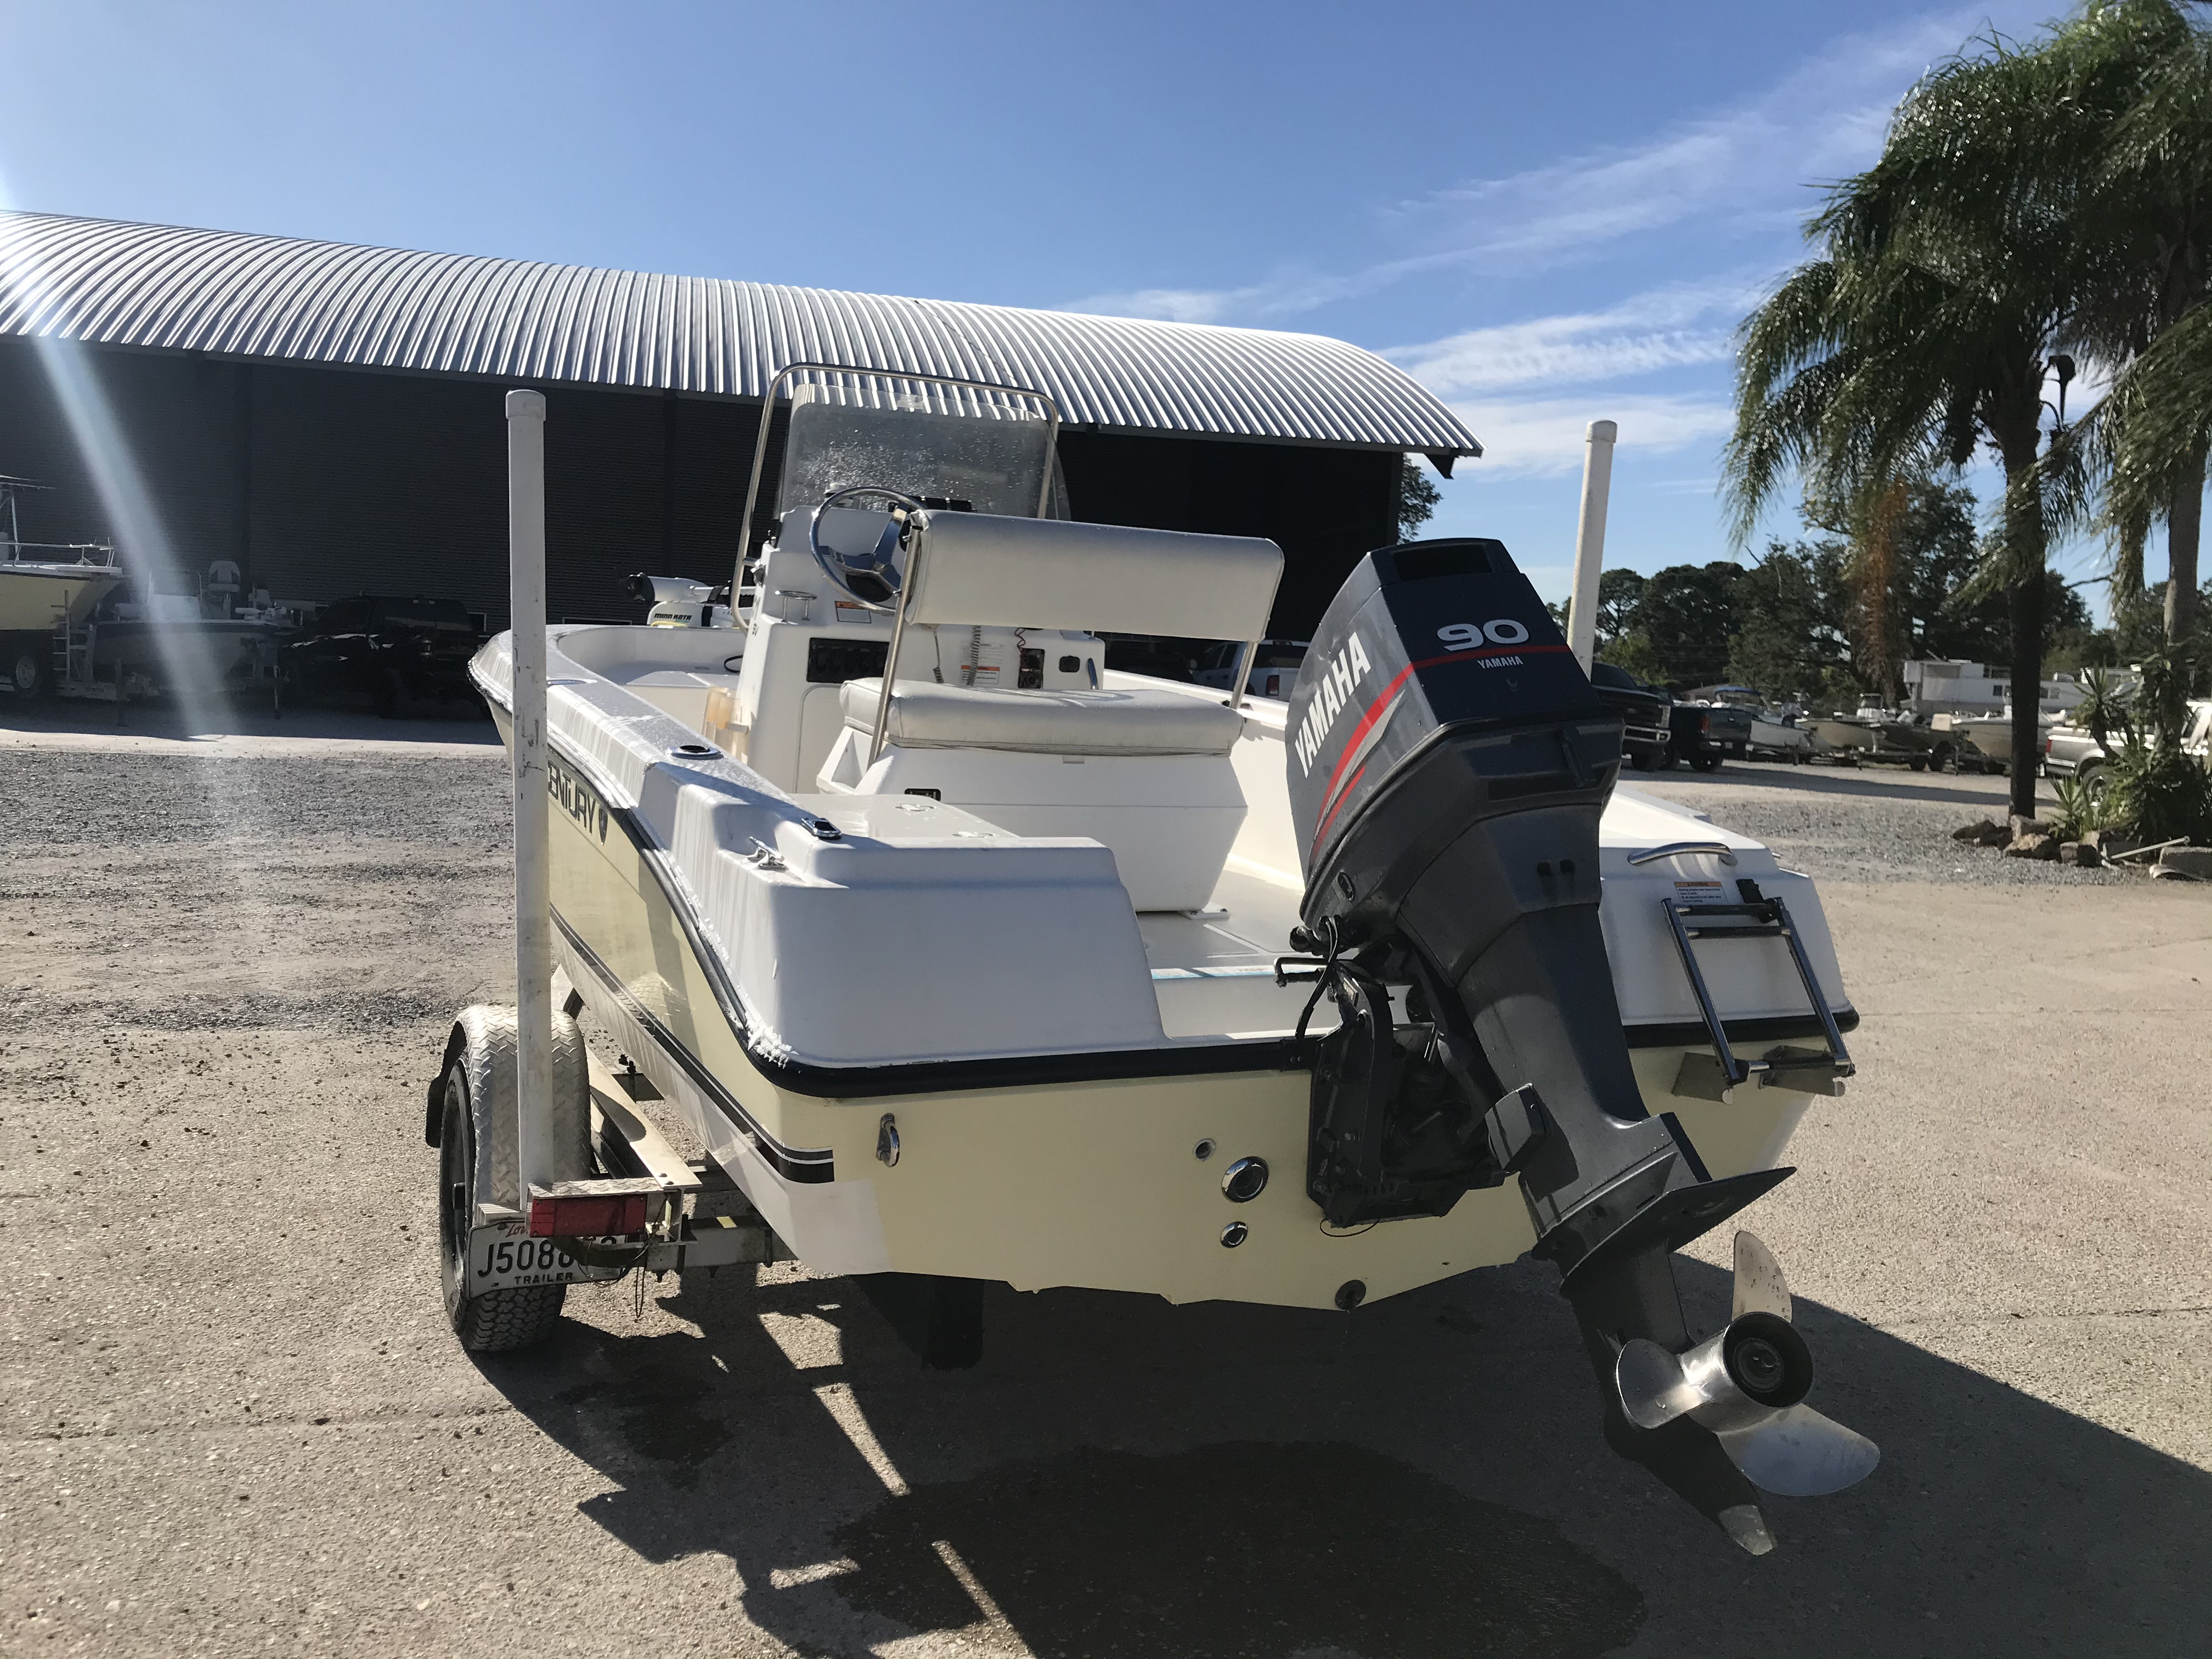 2007 Century boat for sale, model of the boat is 1701 SV & Image # 2 of 8